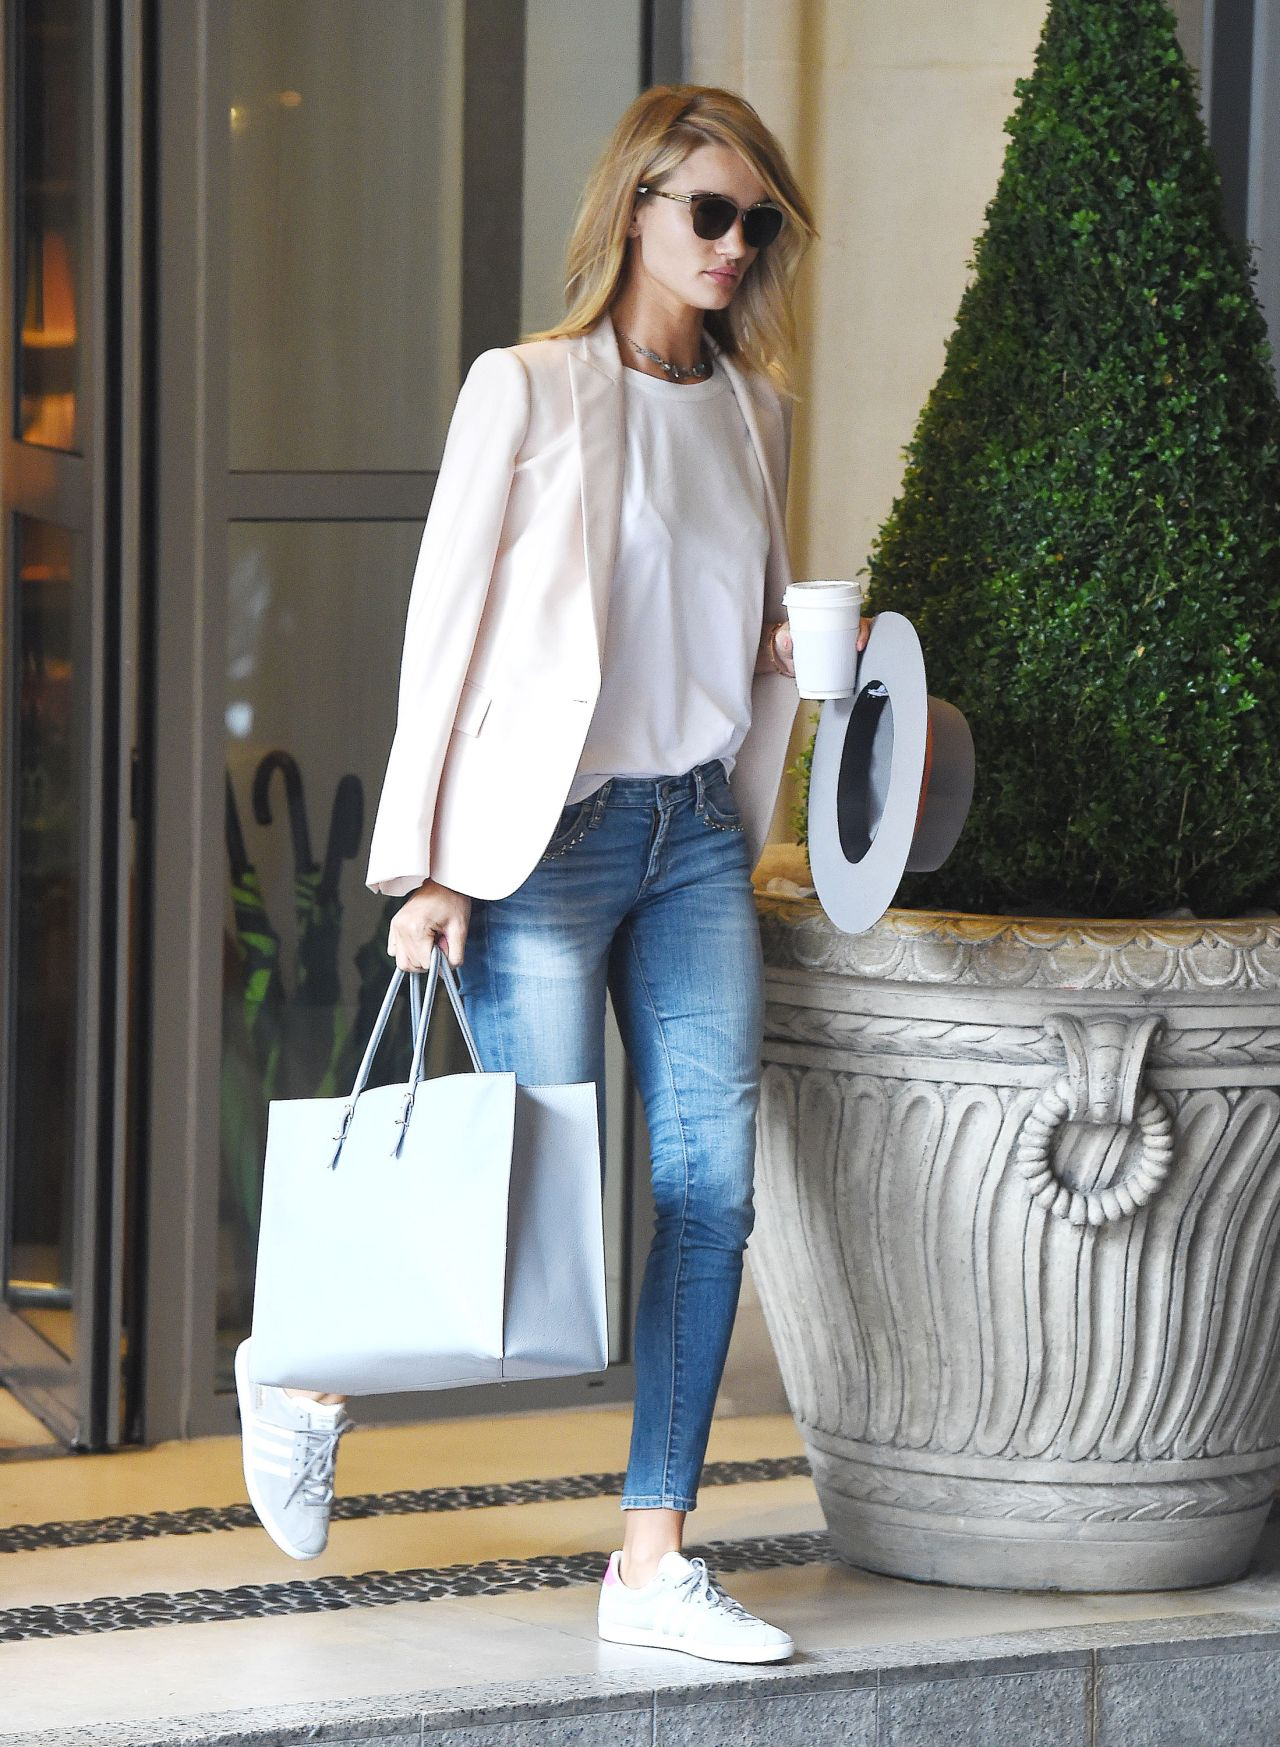 rosie-huntington-whiteley-casual-style-leaving-her-hotel-in-london-july-2015_6